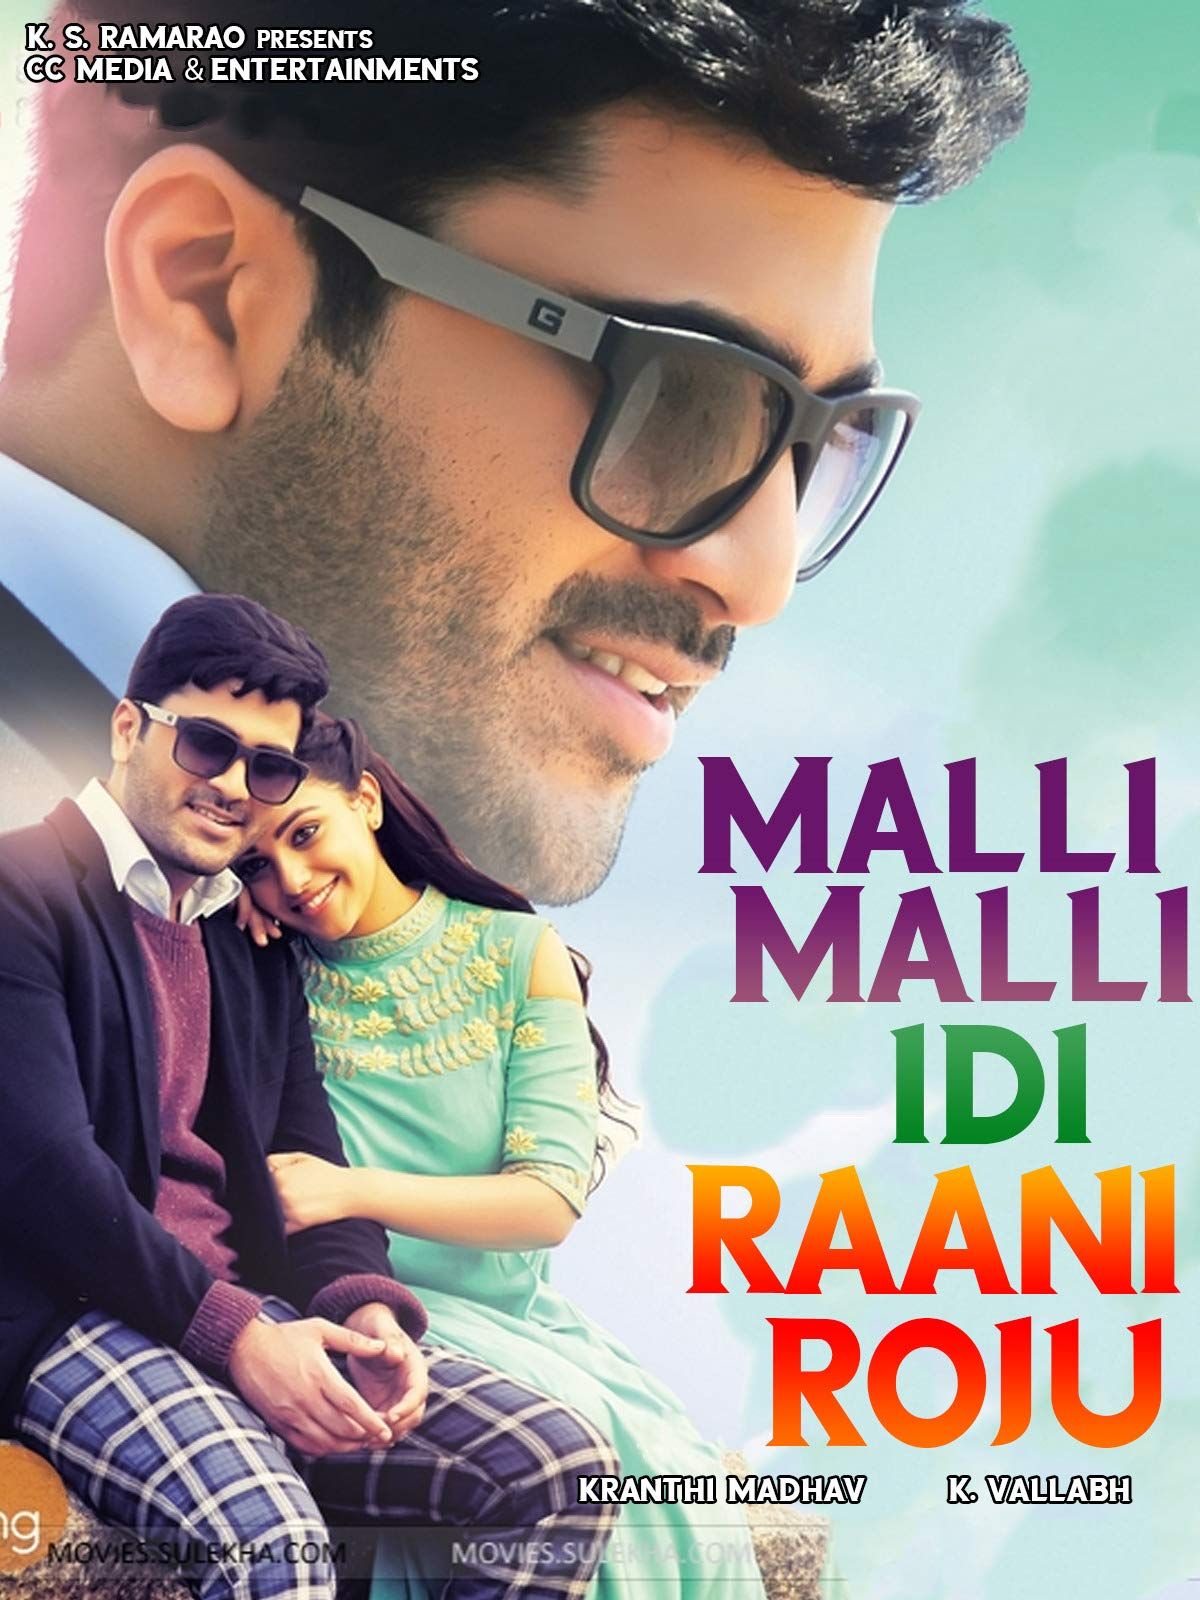 Malli Malli Idi Rani Roju (Real Diljala) 2020 Dual Audio Hindi 450MB UNCUT HDRip 480p ESubs